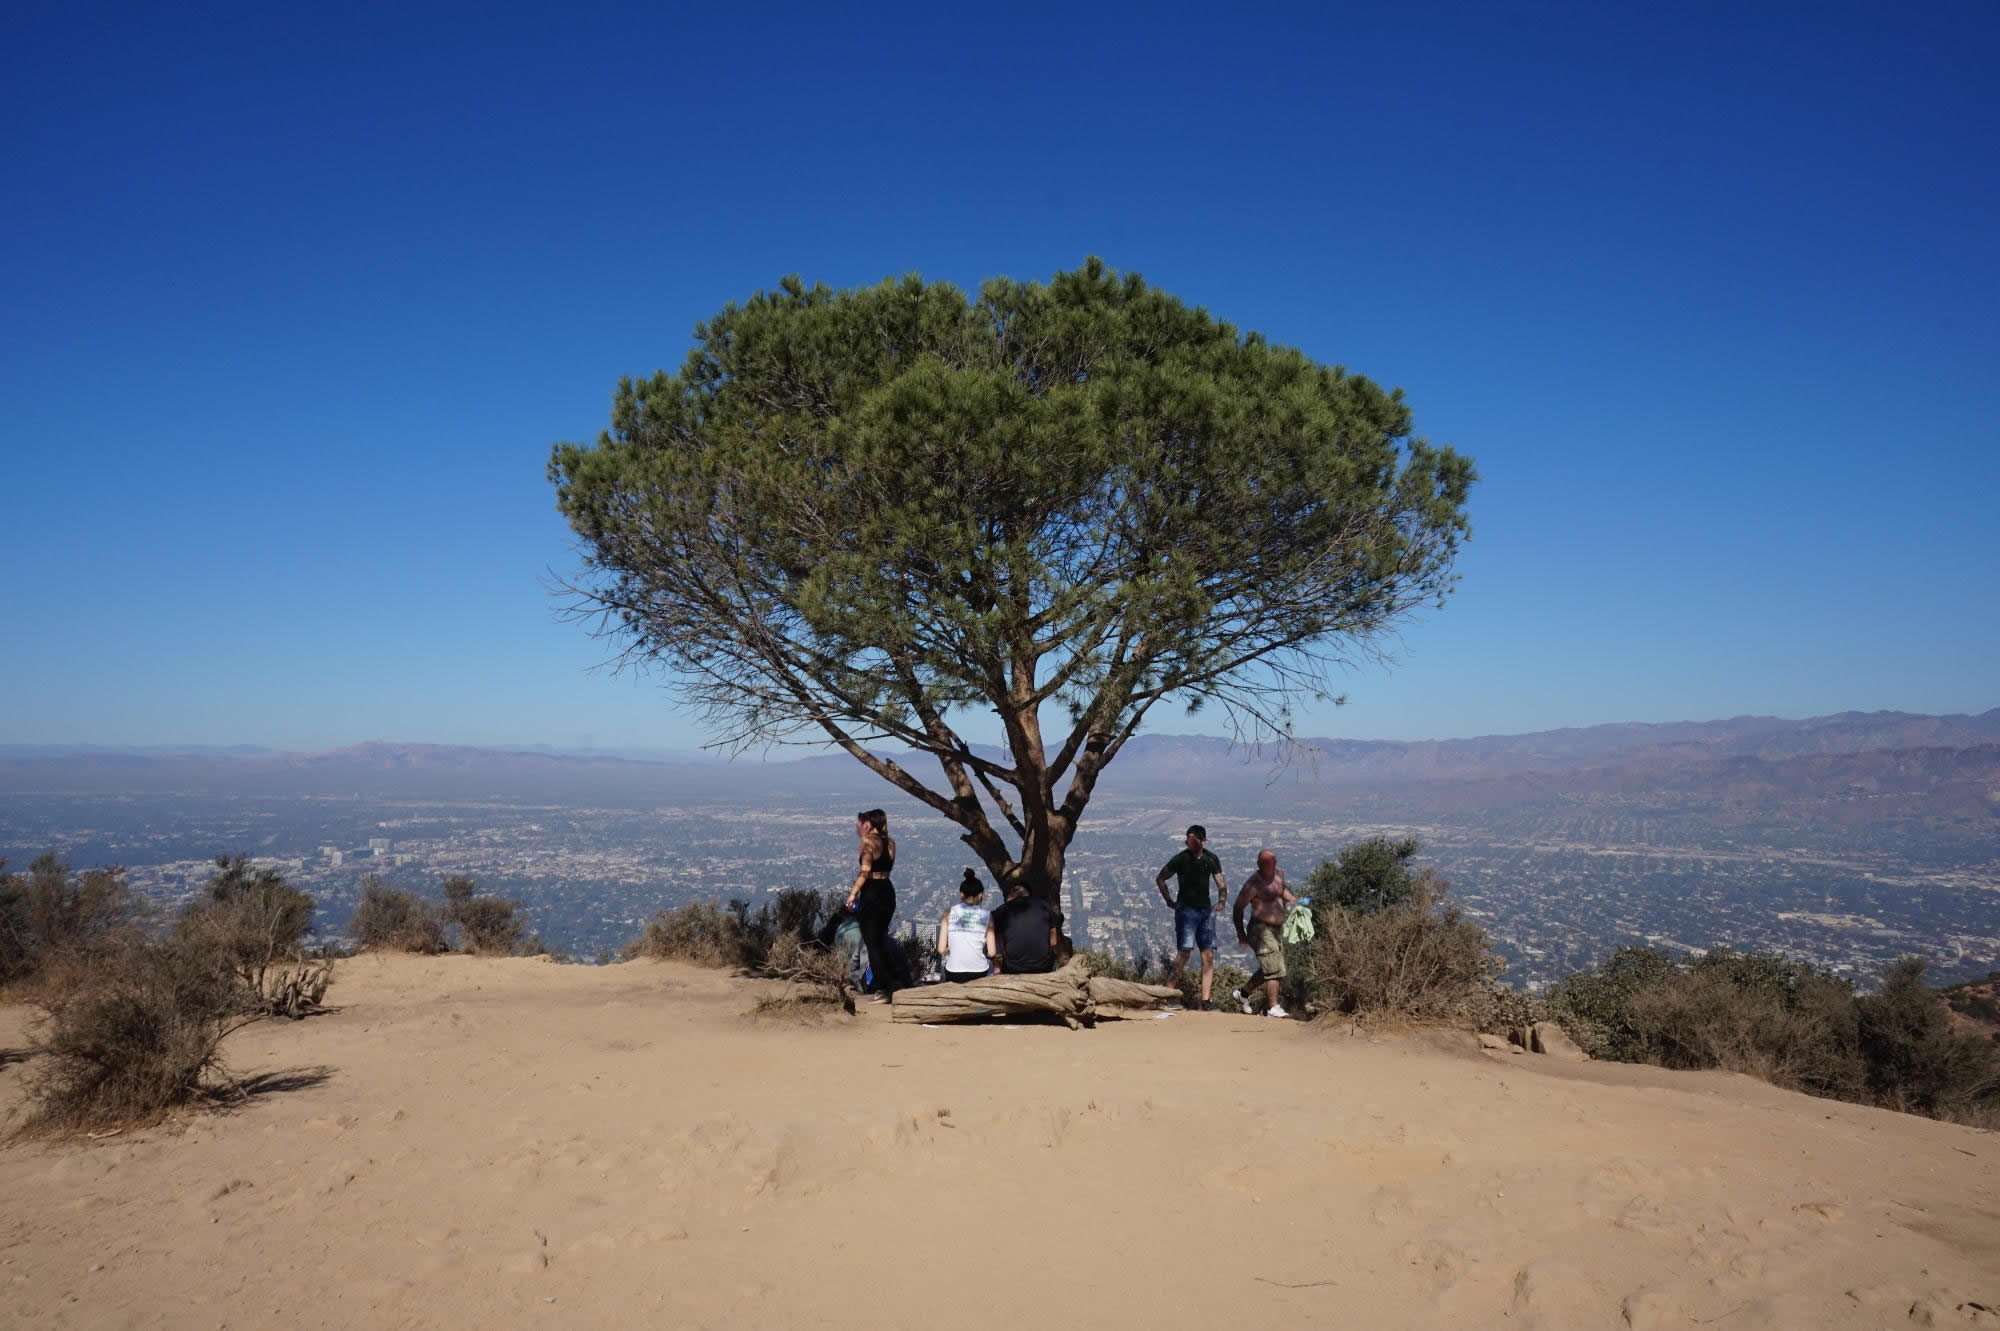 Der Gipfel des Burbank Peak in den Hollywood Hills.